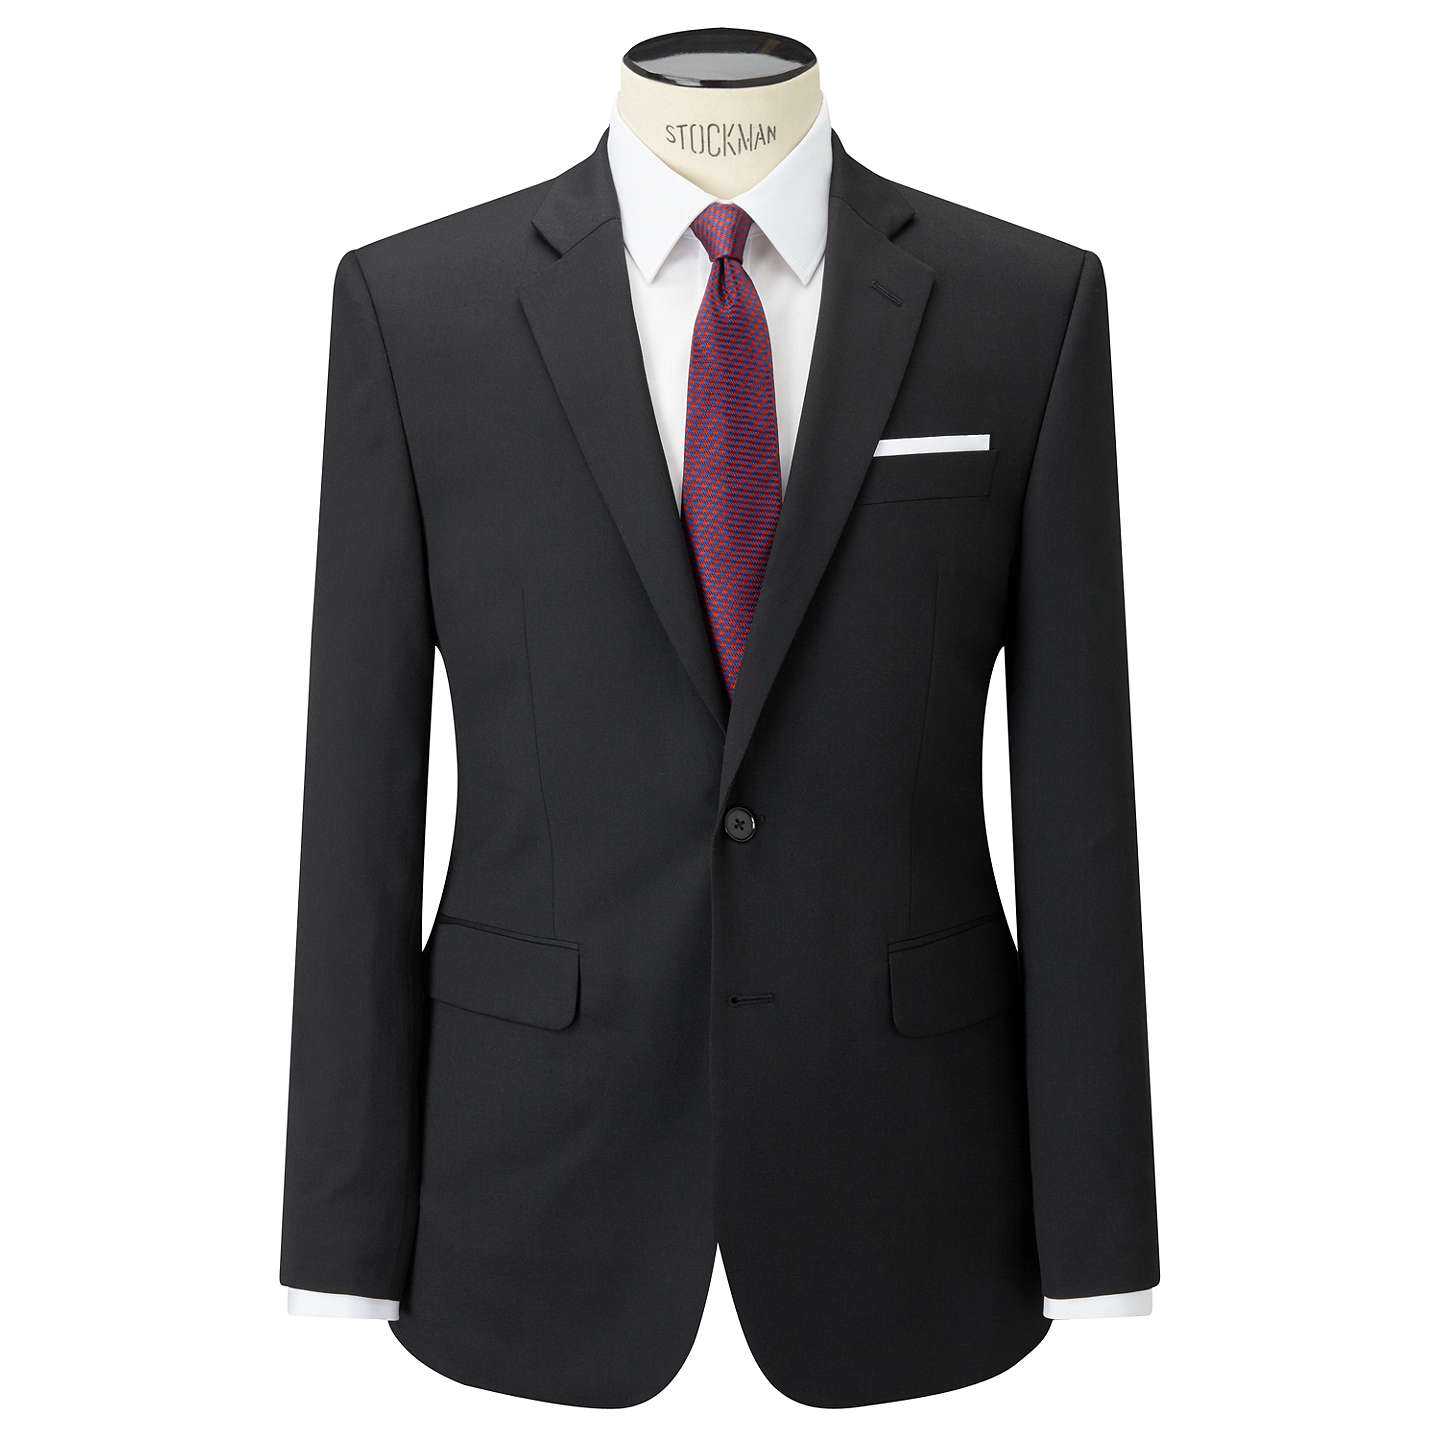 New New John Lewis Washable Tailored Suit Jacket Black for Men Outlet Online Sale